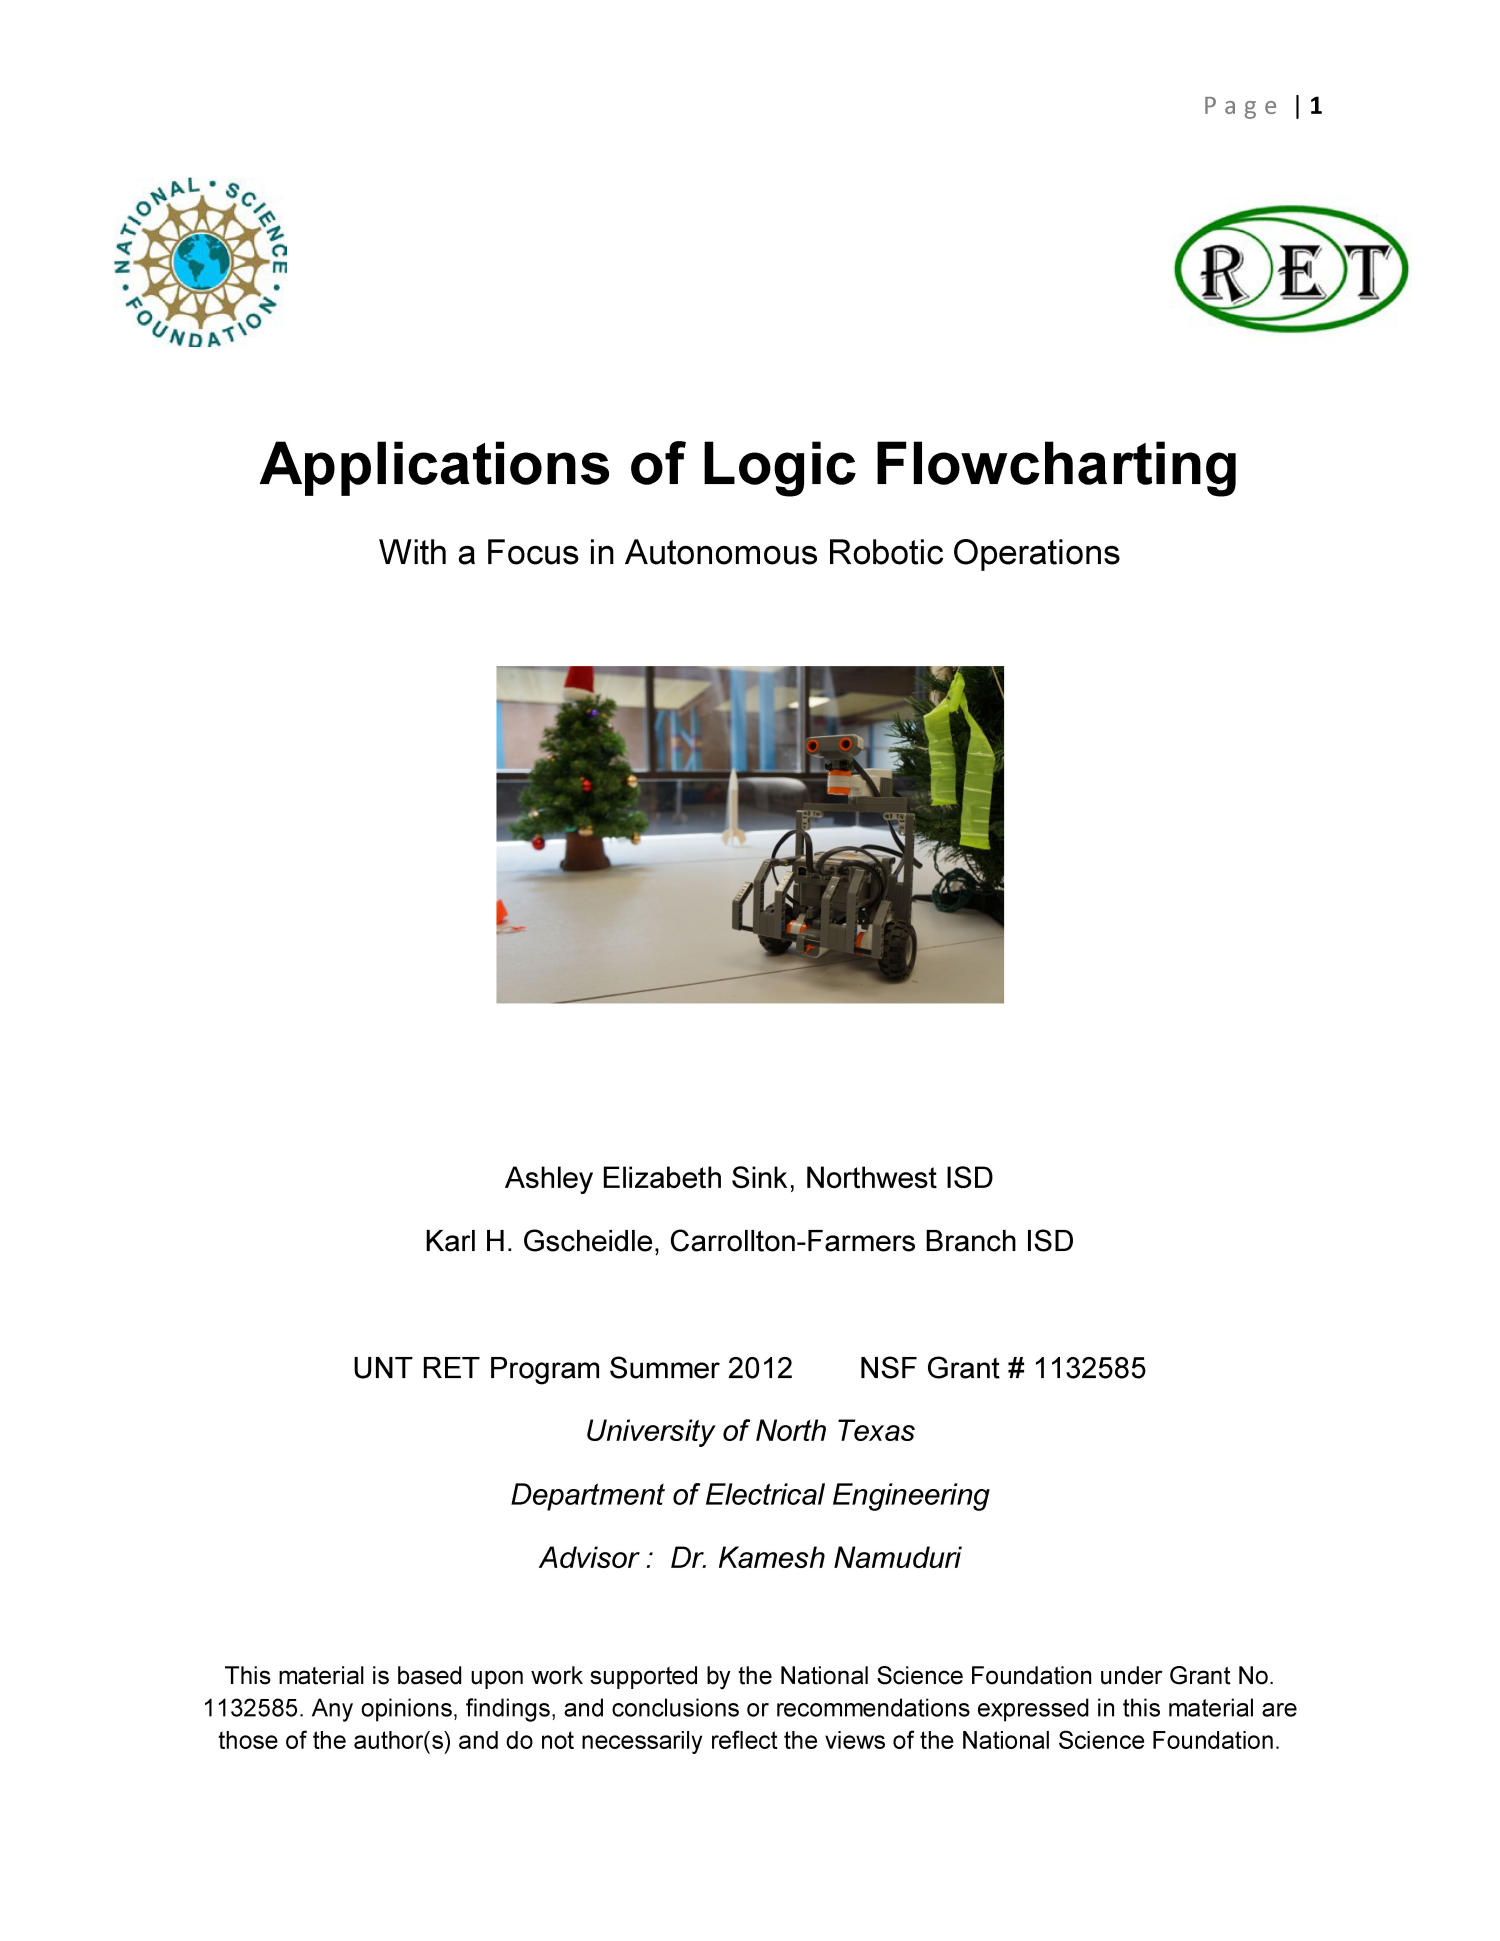 Applications of Logic Flowcharting With a Focus in Autonomous Robotic Operations                                                                                                      1